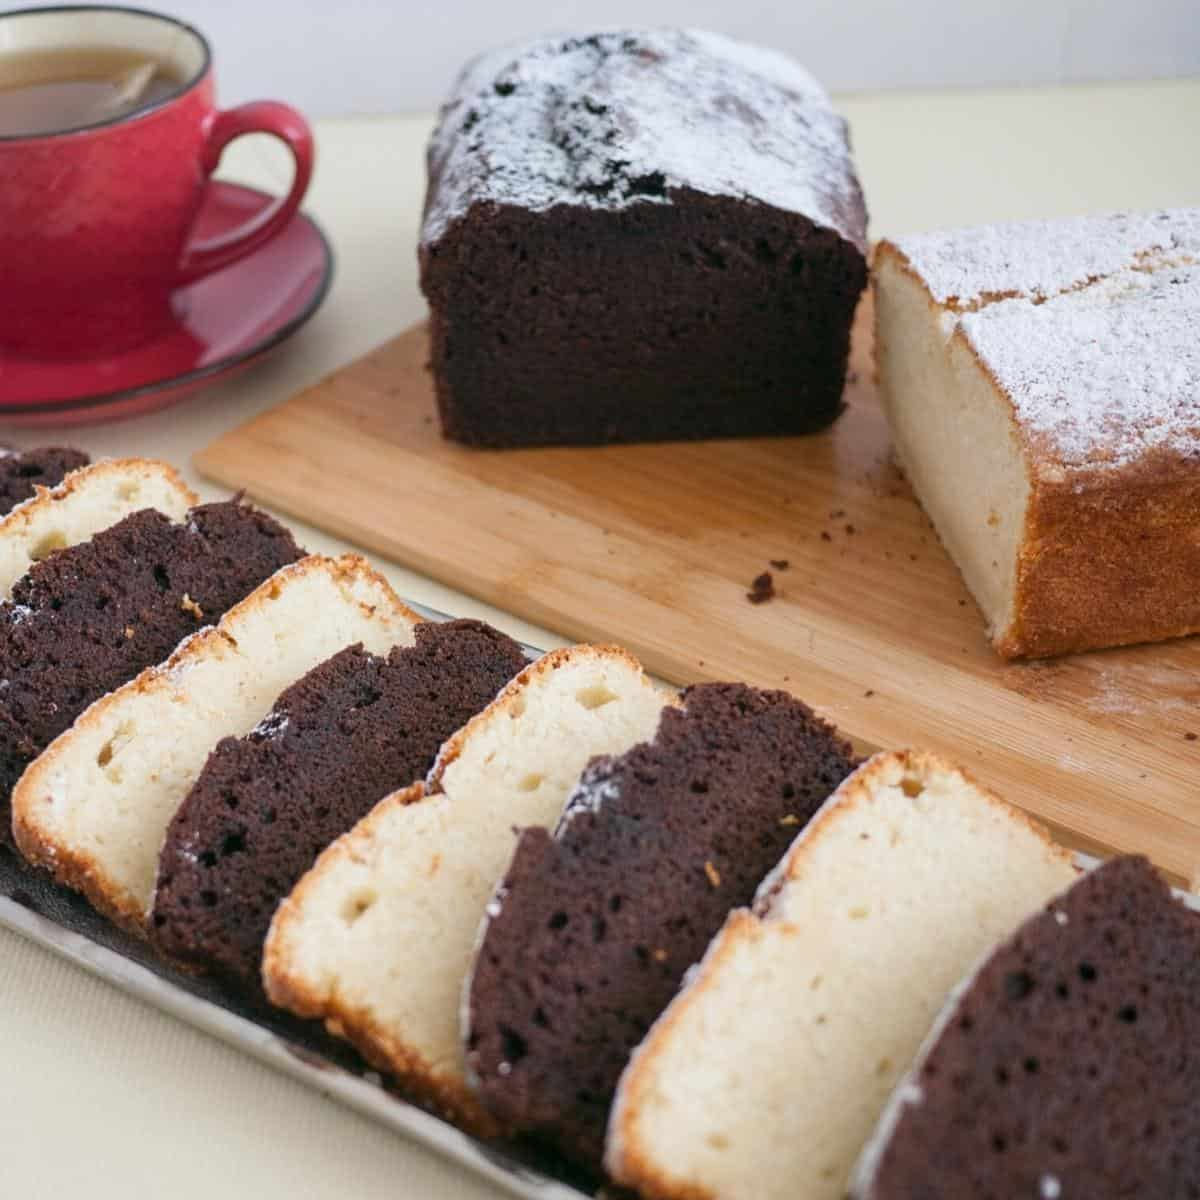 Slices of chocolate and vanilla pound cake on a wooden board.